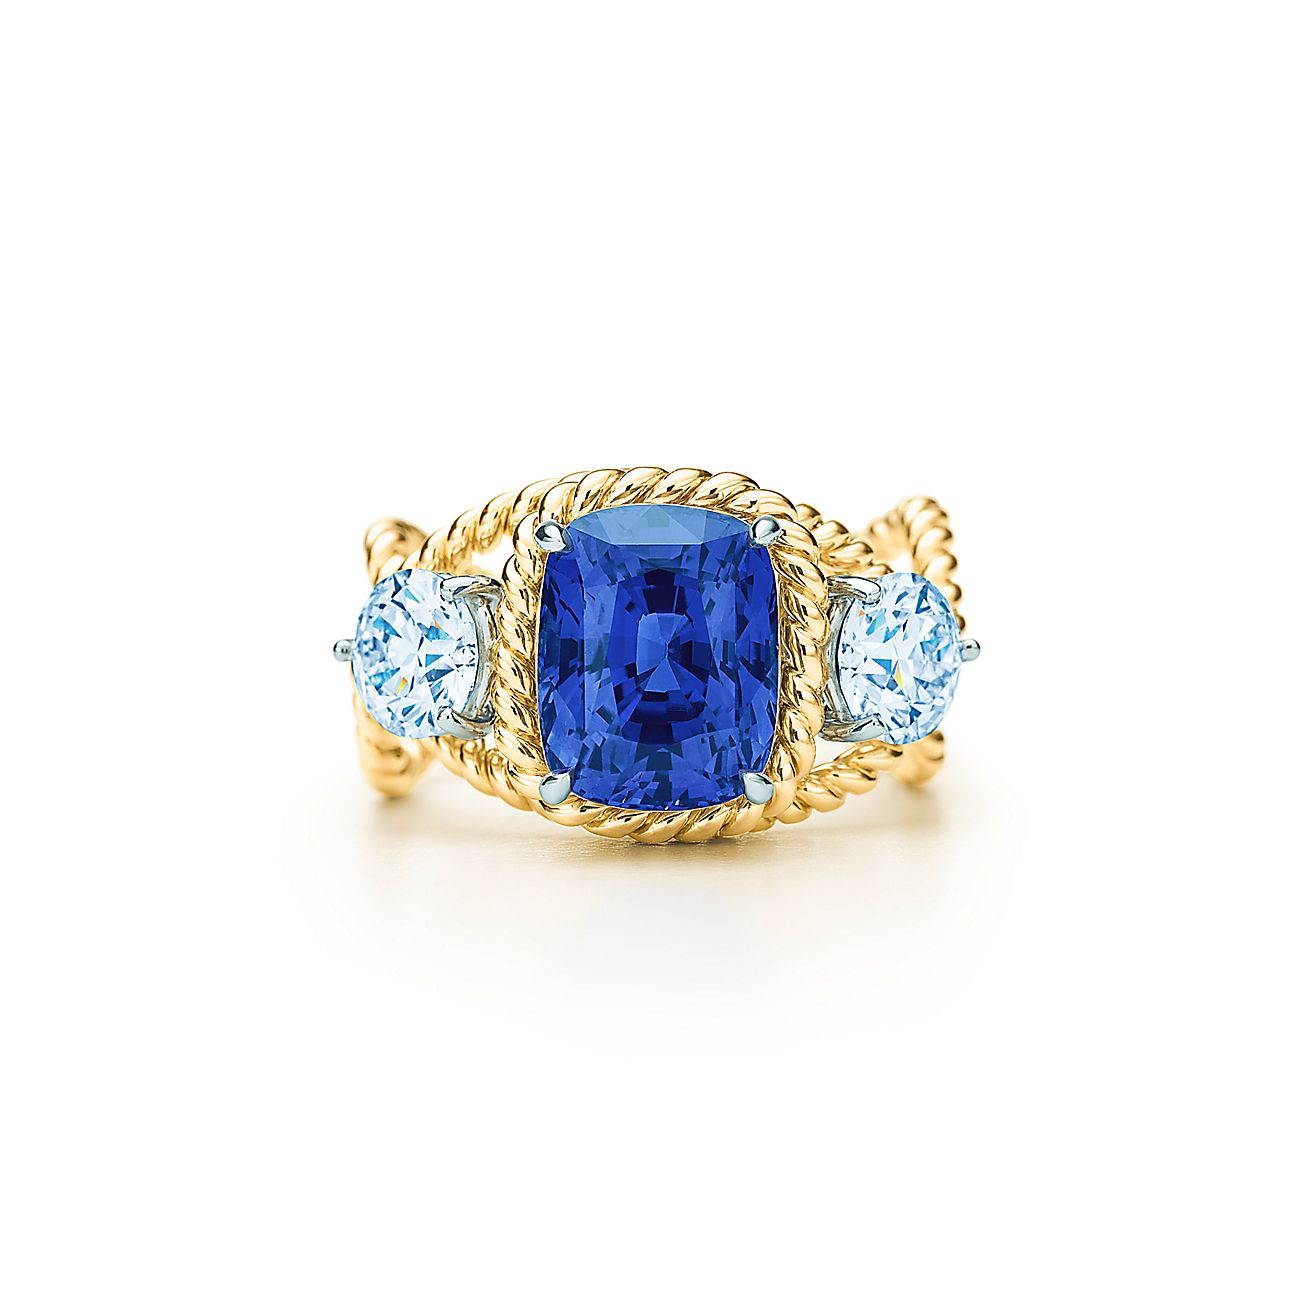 Tiffany Amp Co Schlumberger Rope Ring With A 5 46 Carat